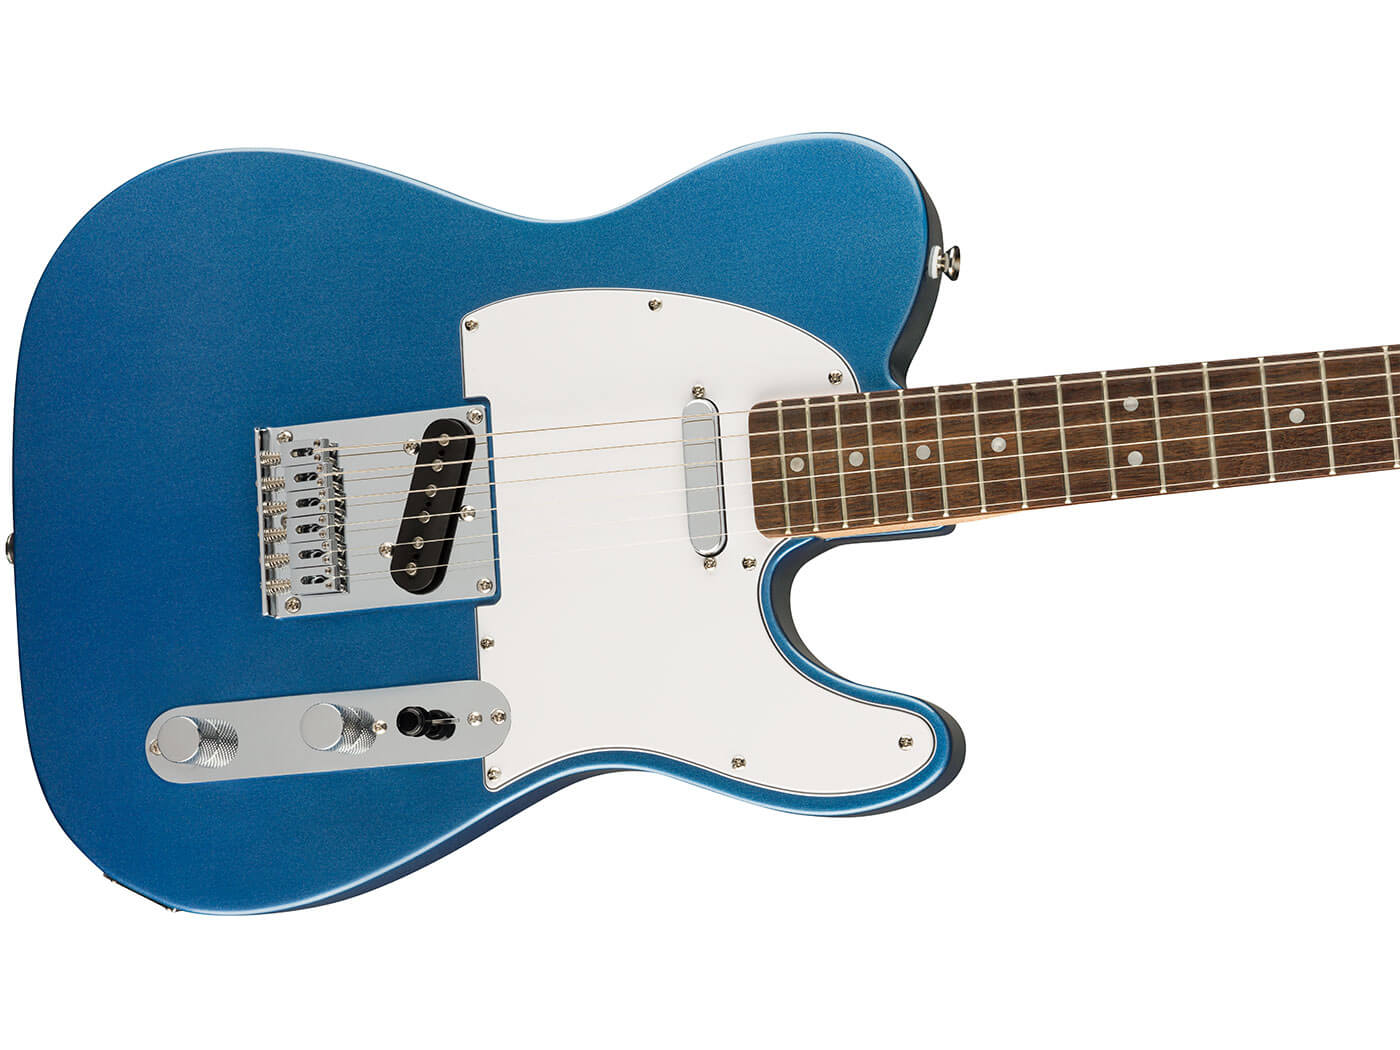 The Affinity Telecaster